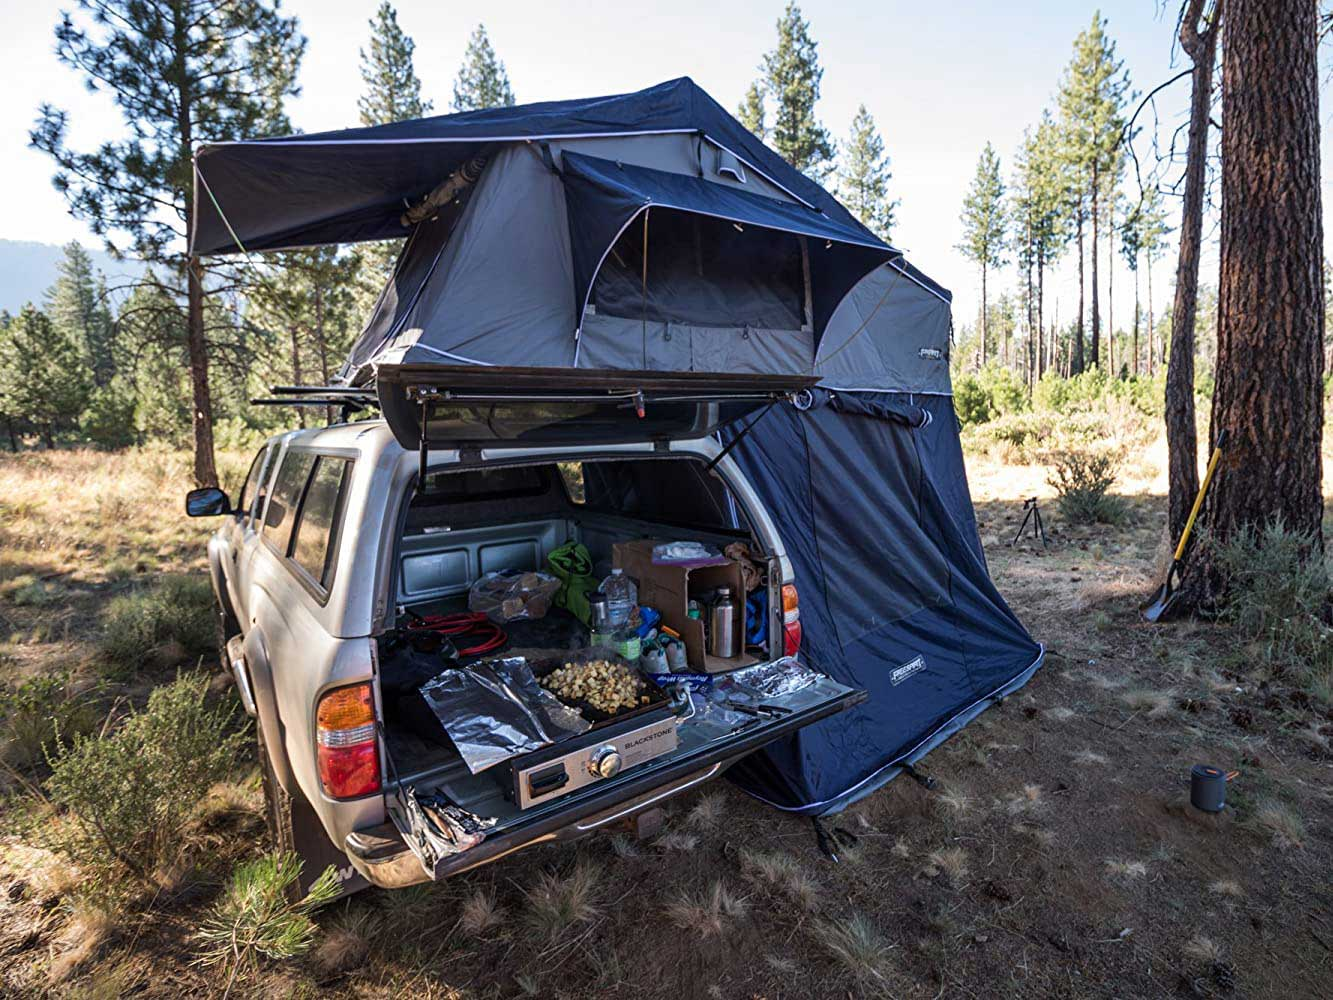 Portable griddle in van while camping.